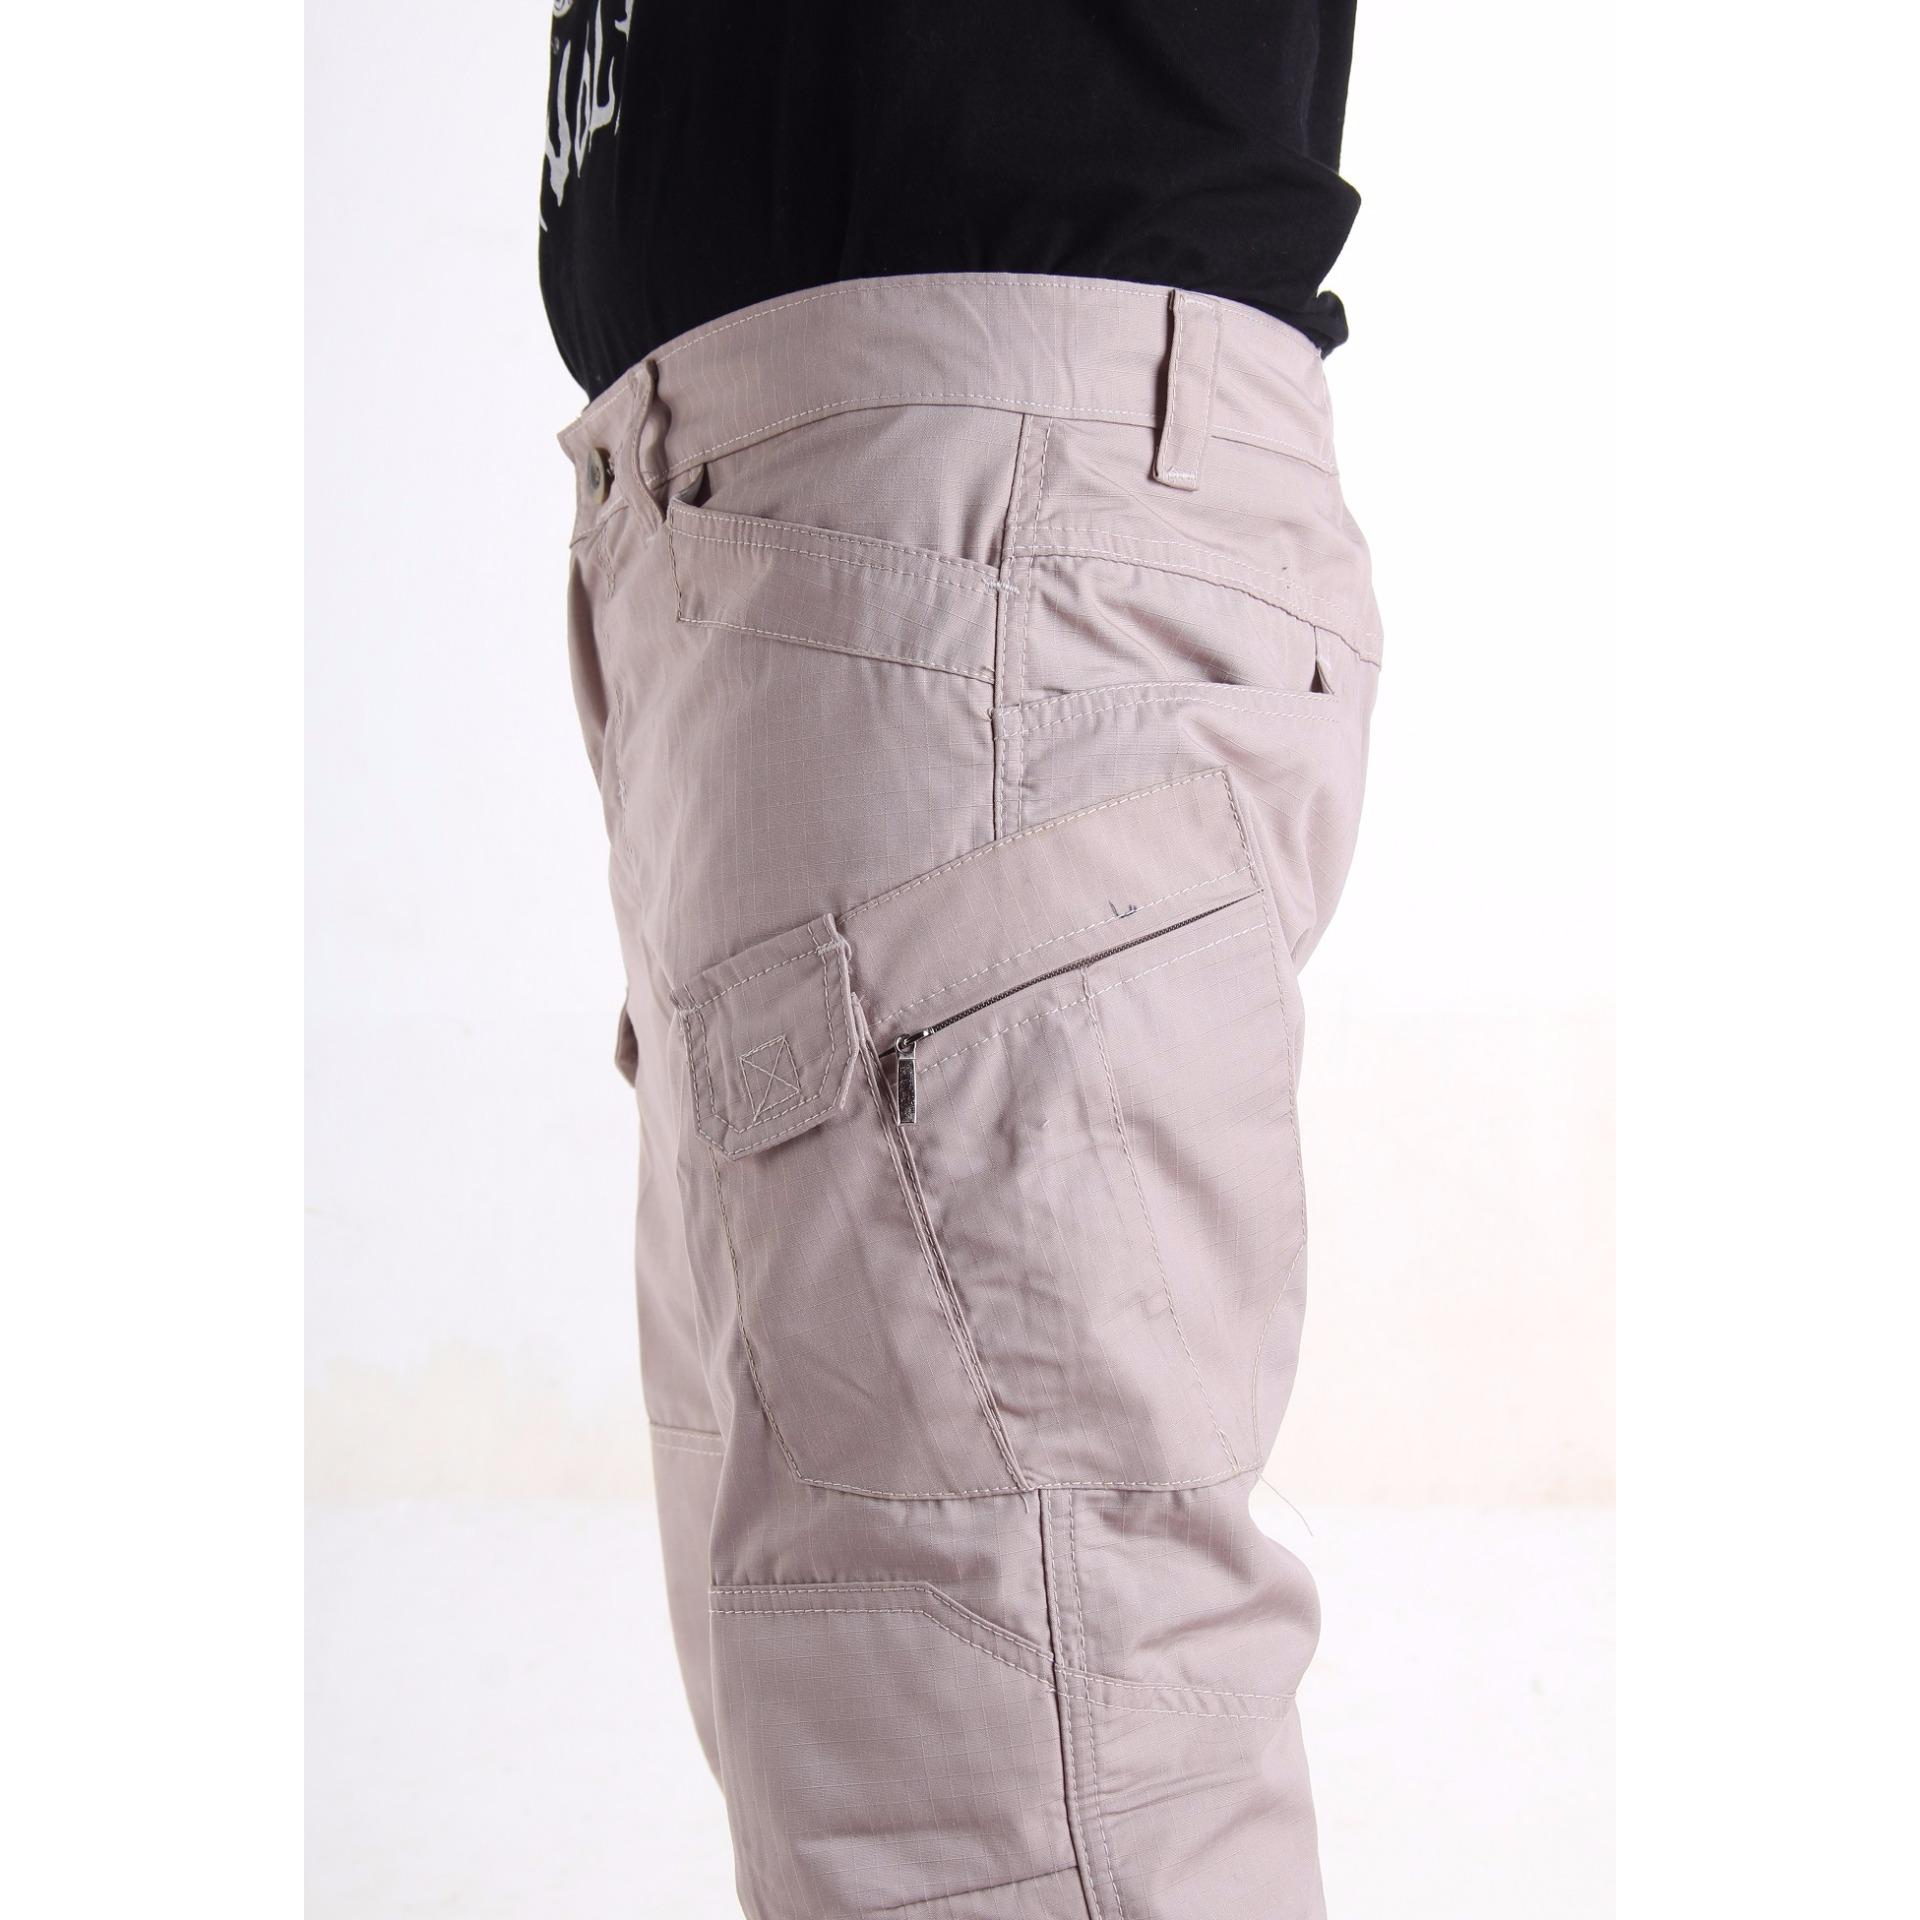 Celana Cargo Panjang PDL [cream/khaki] Tactical BlackHawk Best Seller ...